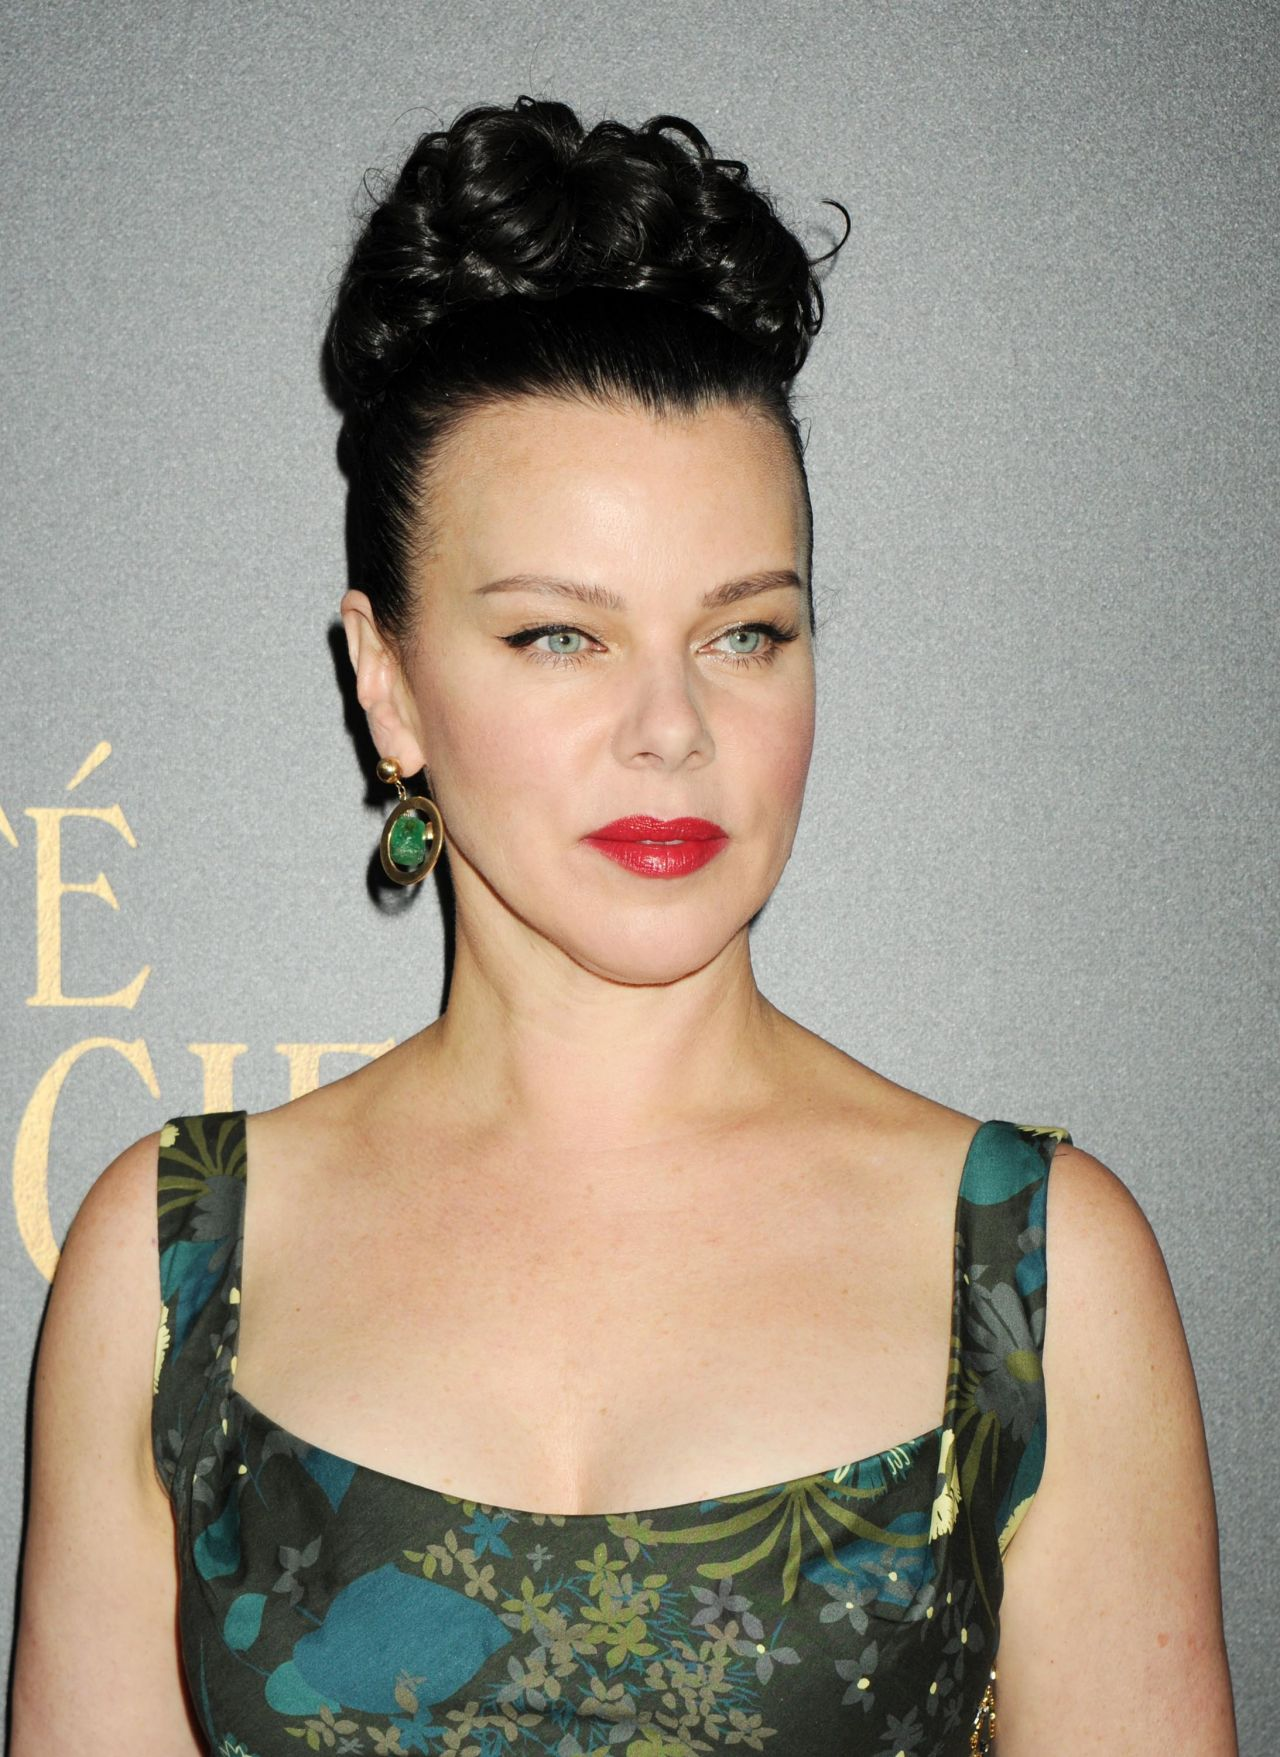 Debi Mazar Cafe Society Premiere In New York City